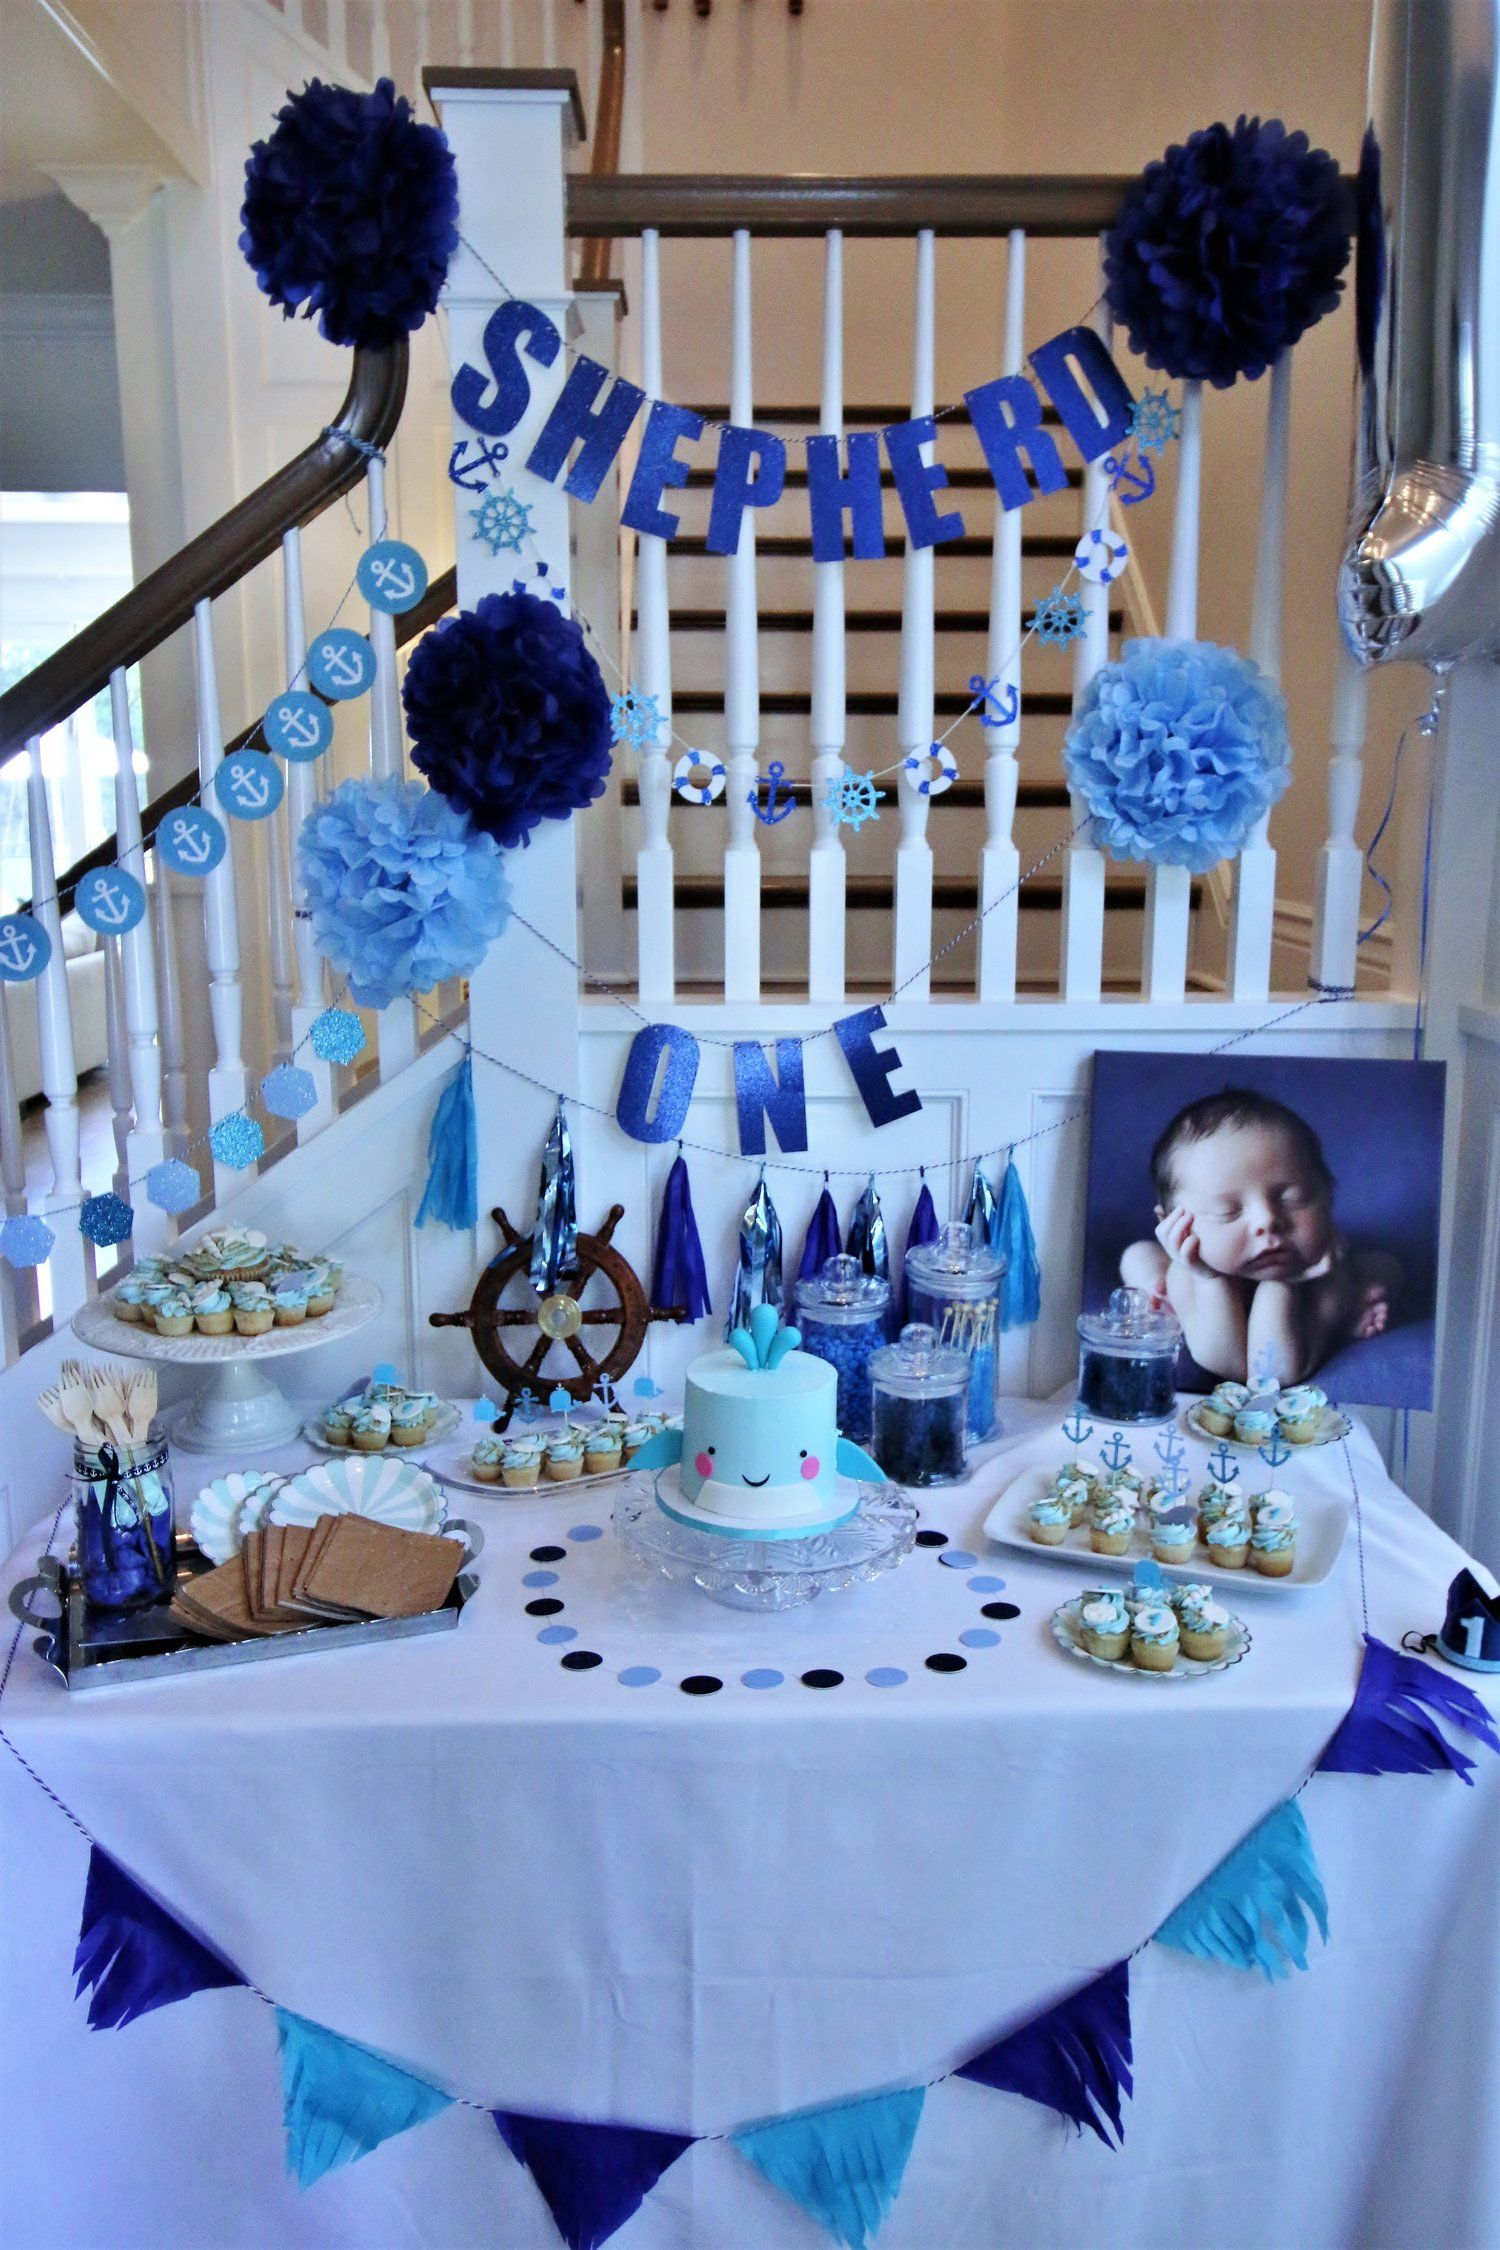 Baby Shepherd S First Birthday More At Www Politeasfudge Com Boy Birthday Decorations First Birthday Decorations Boy First Birthday Decorations